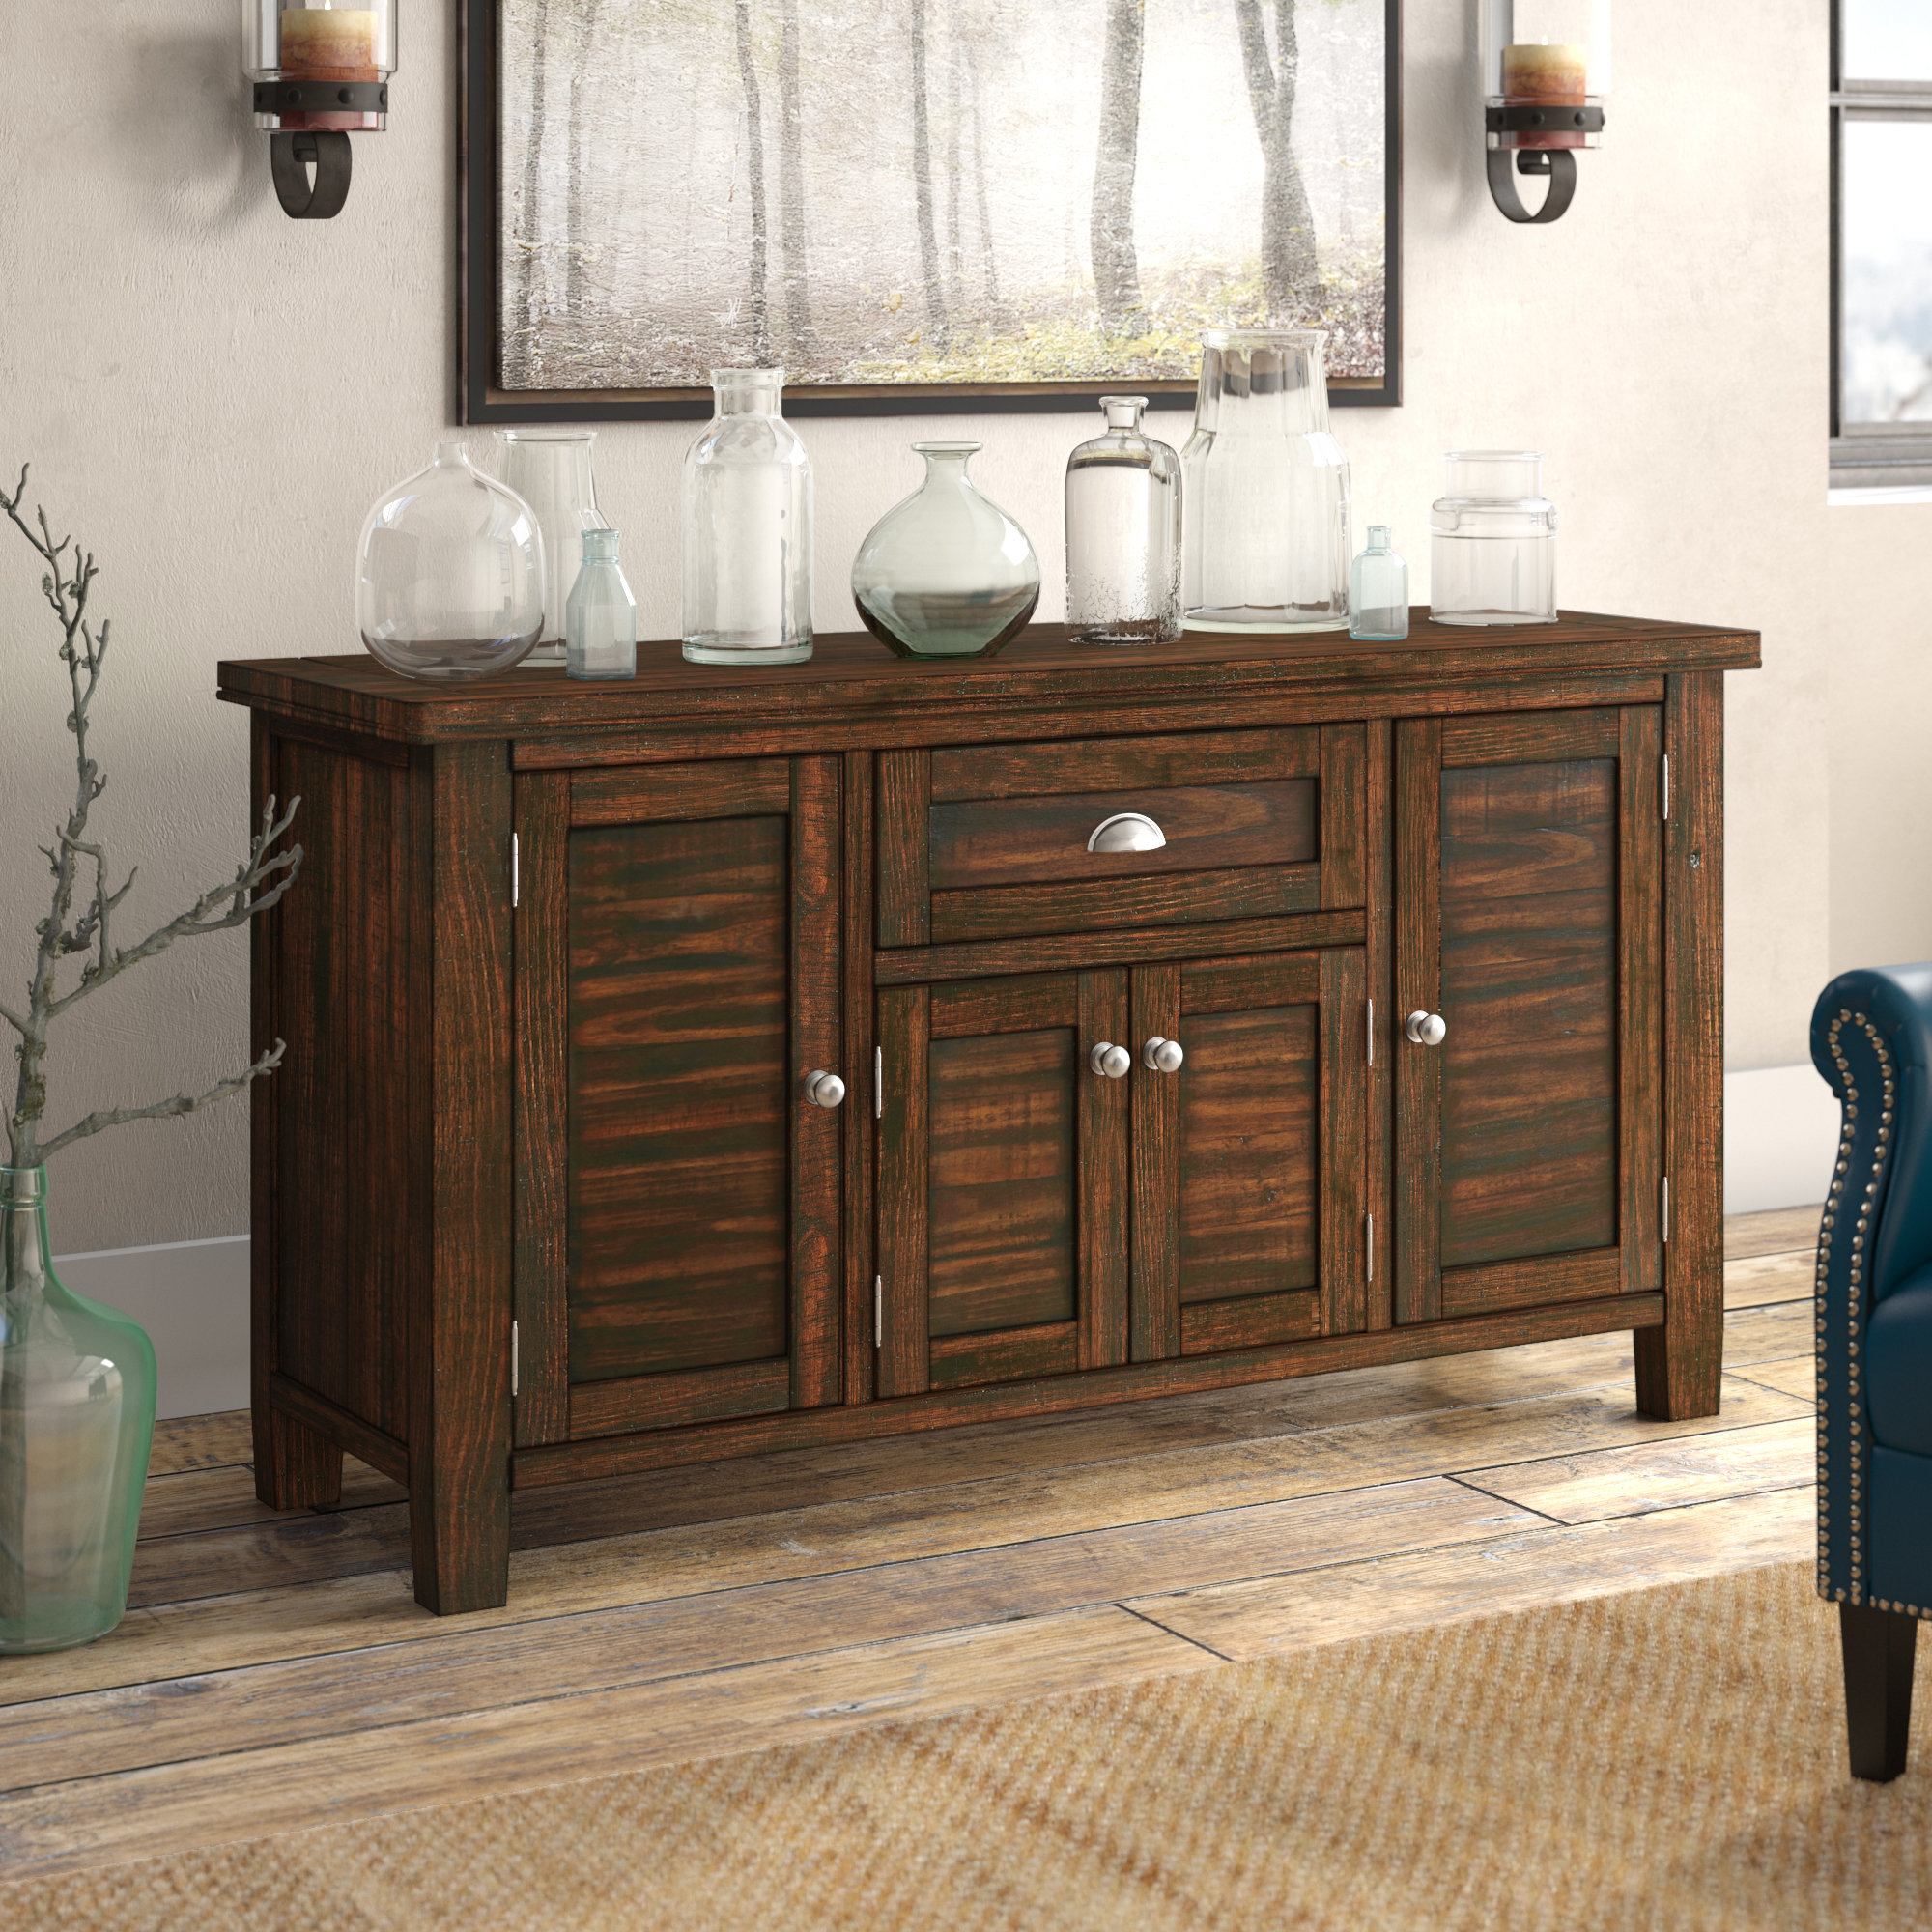 Chaffins Sideboard With Nashoba Sideboards (View 15 of 20)